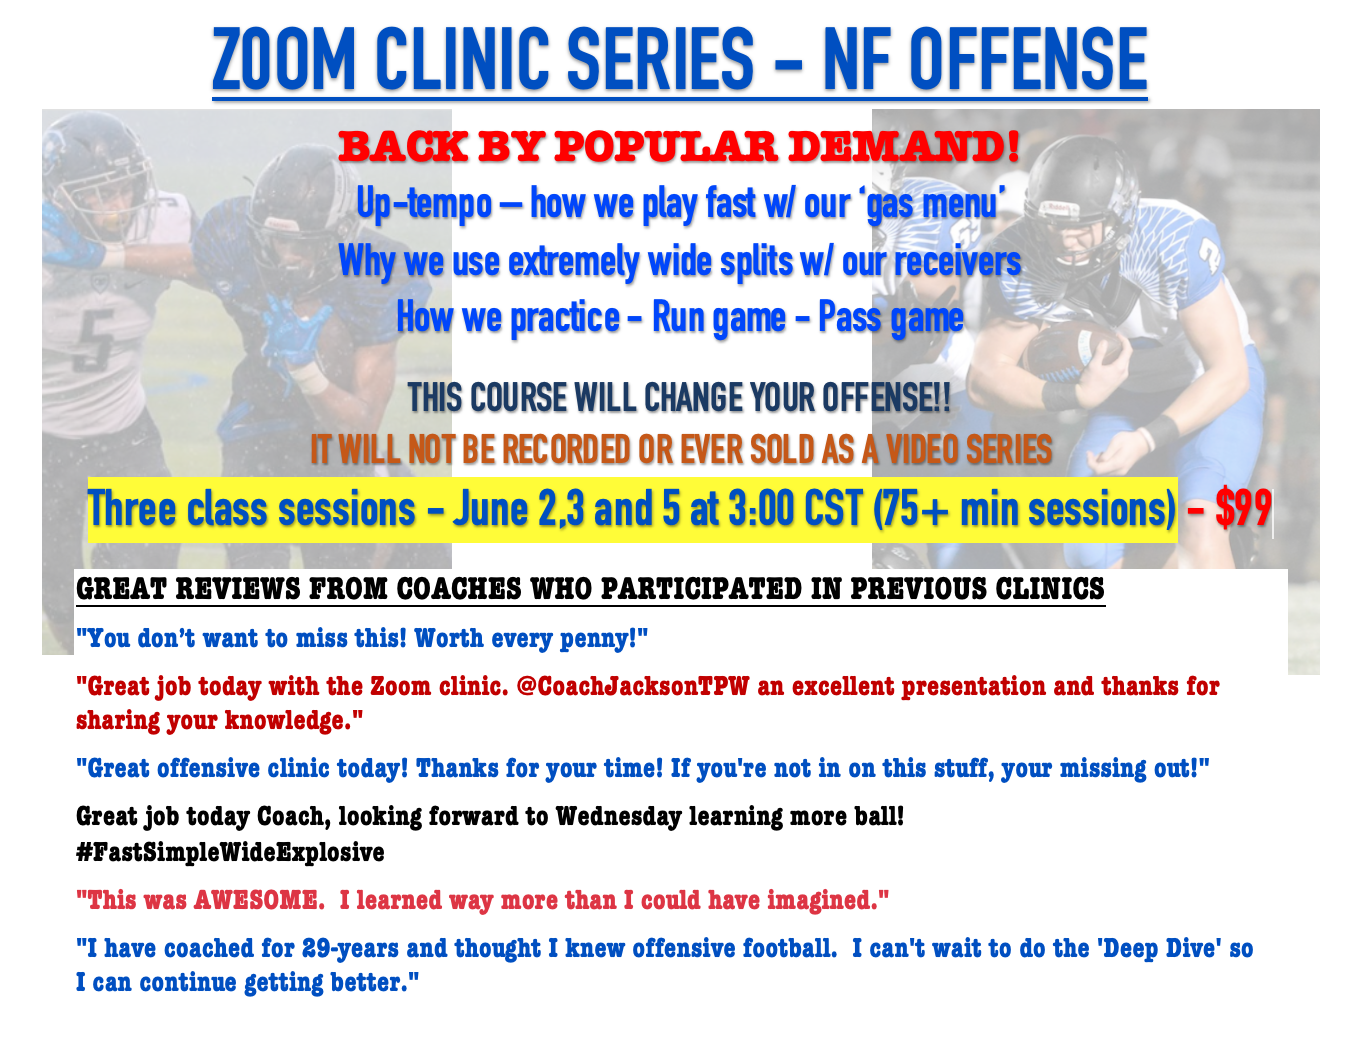 NF OFFENSE - ZOOM CLINIC - JUNE CLASSES